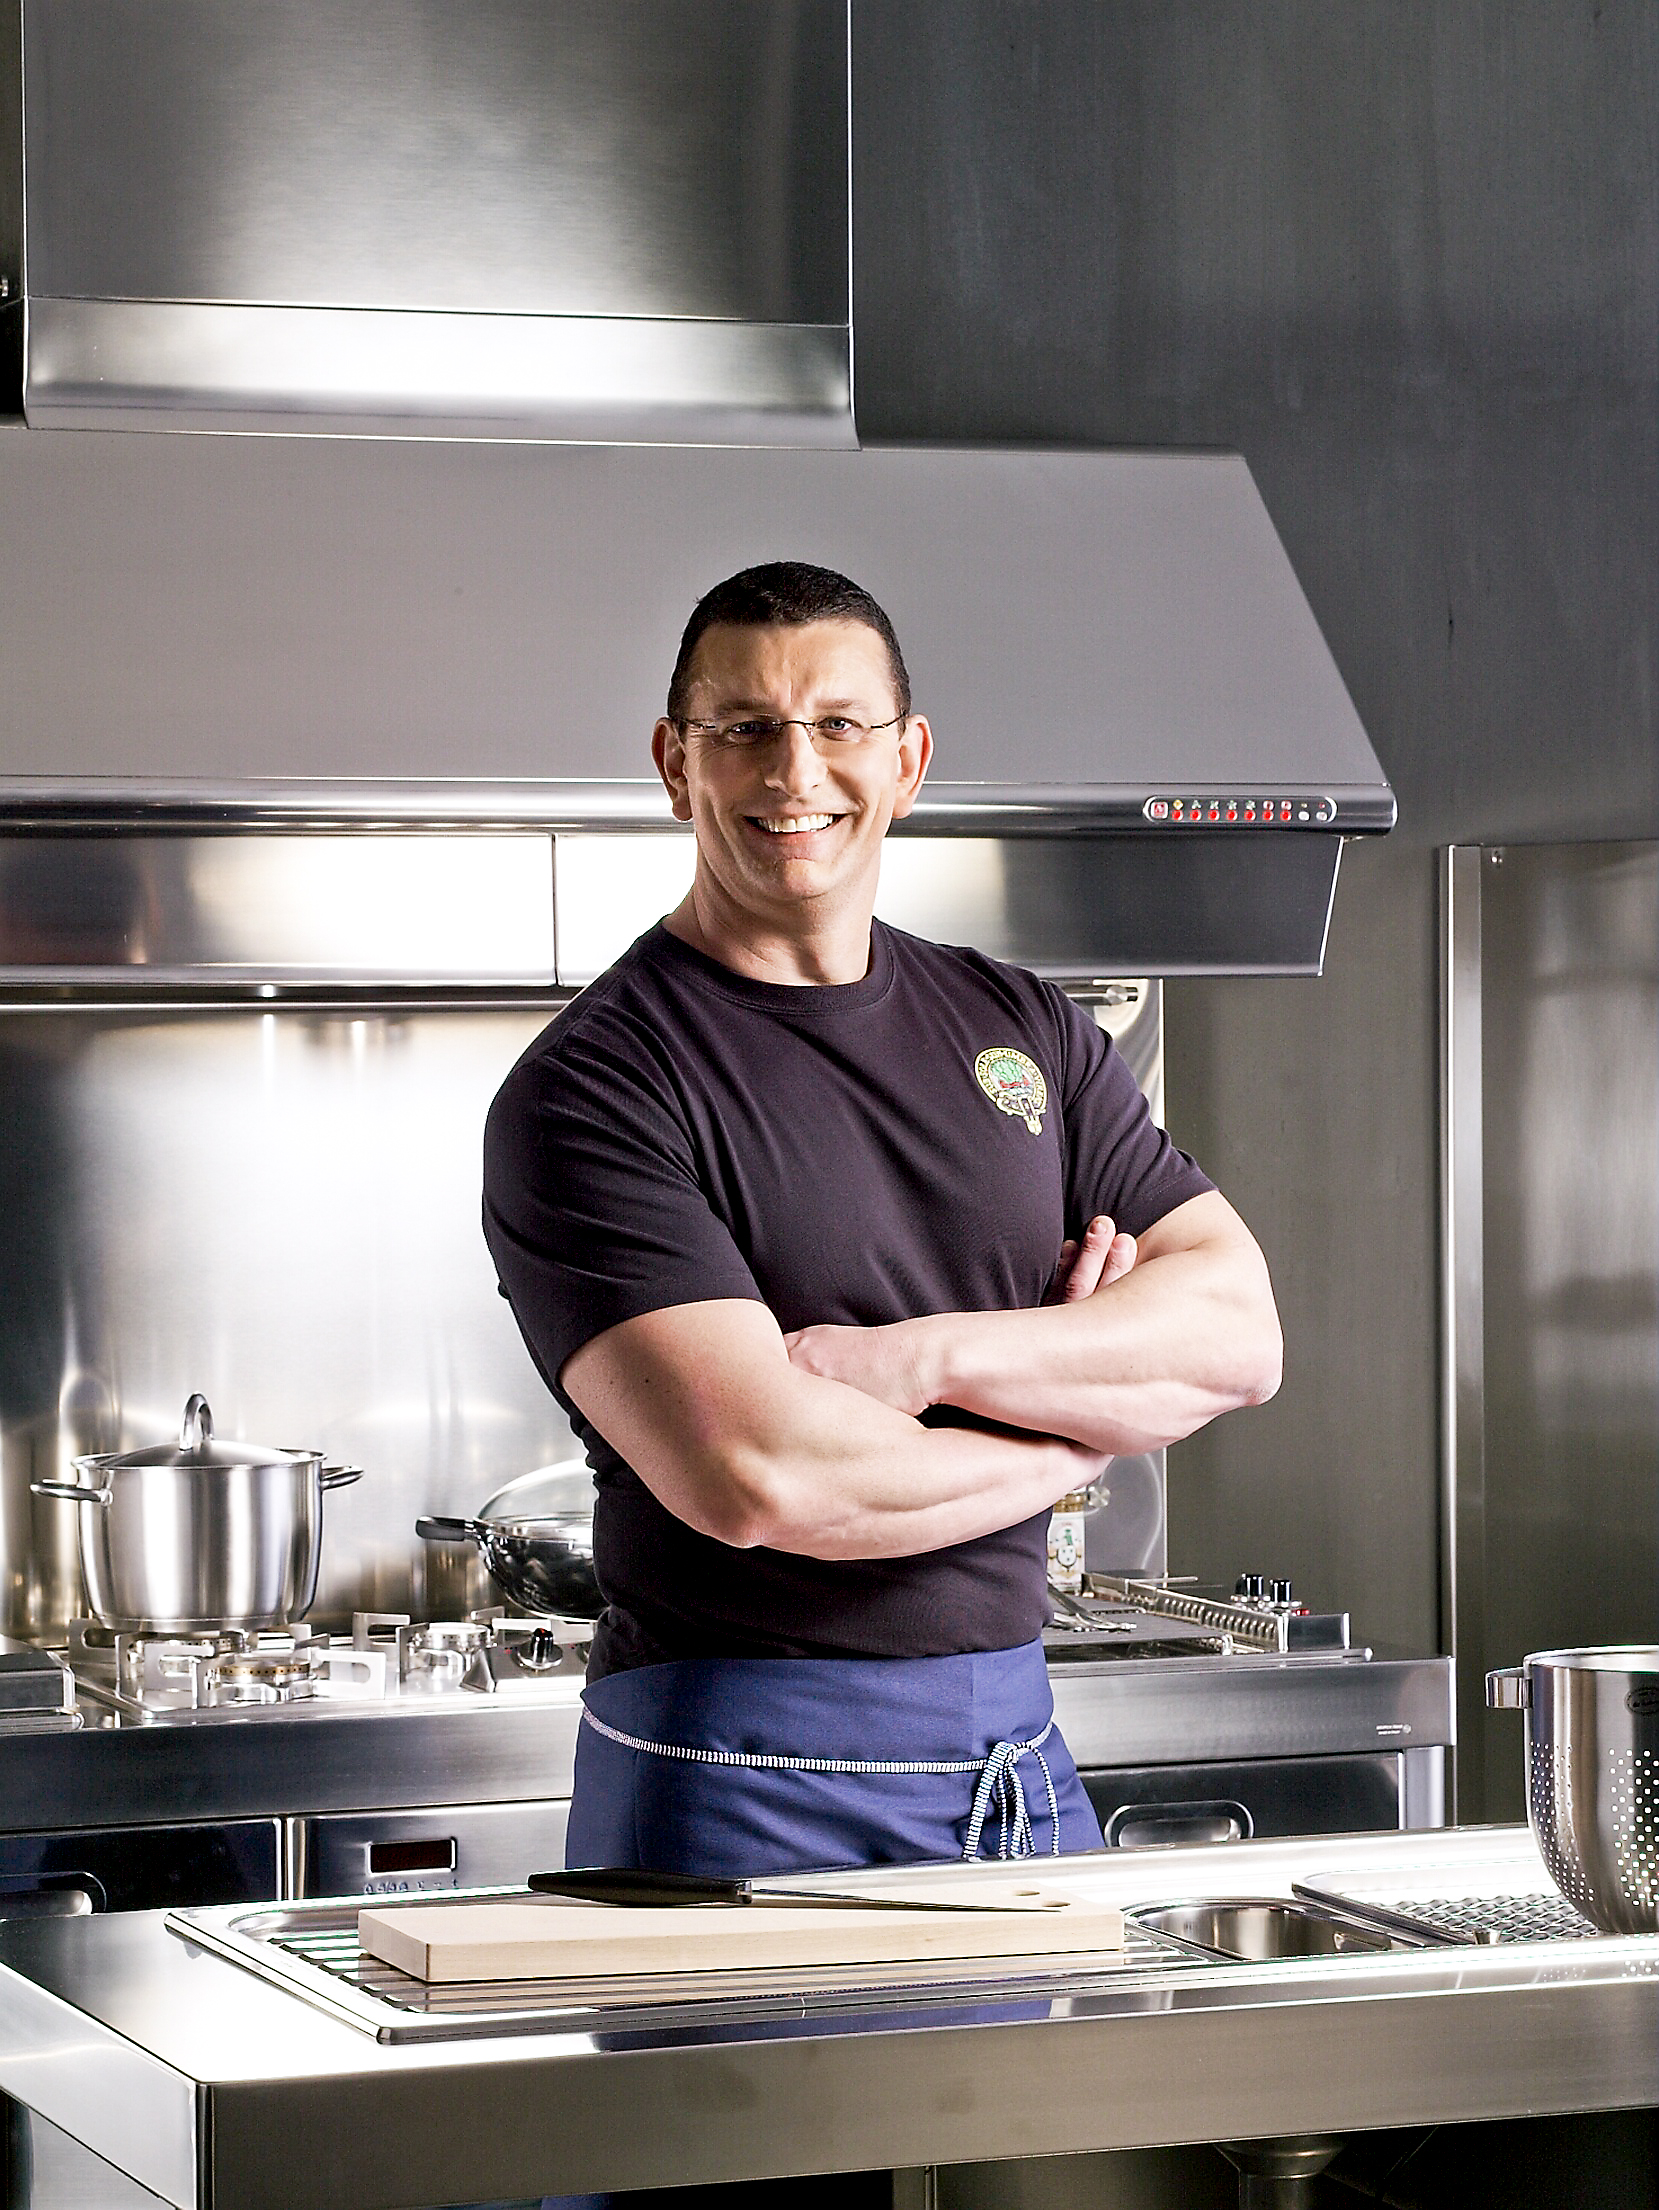 Chef Robert Irvine Chef Robert Irvine will be at Palace Theatre in Greensburg on Nov. 9.